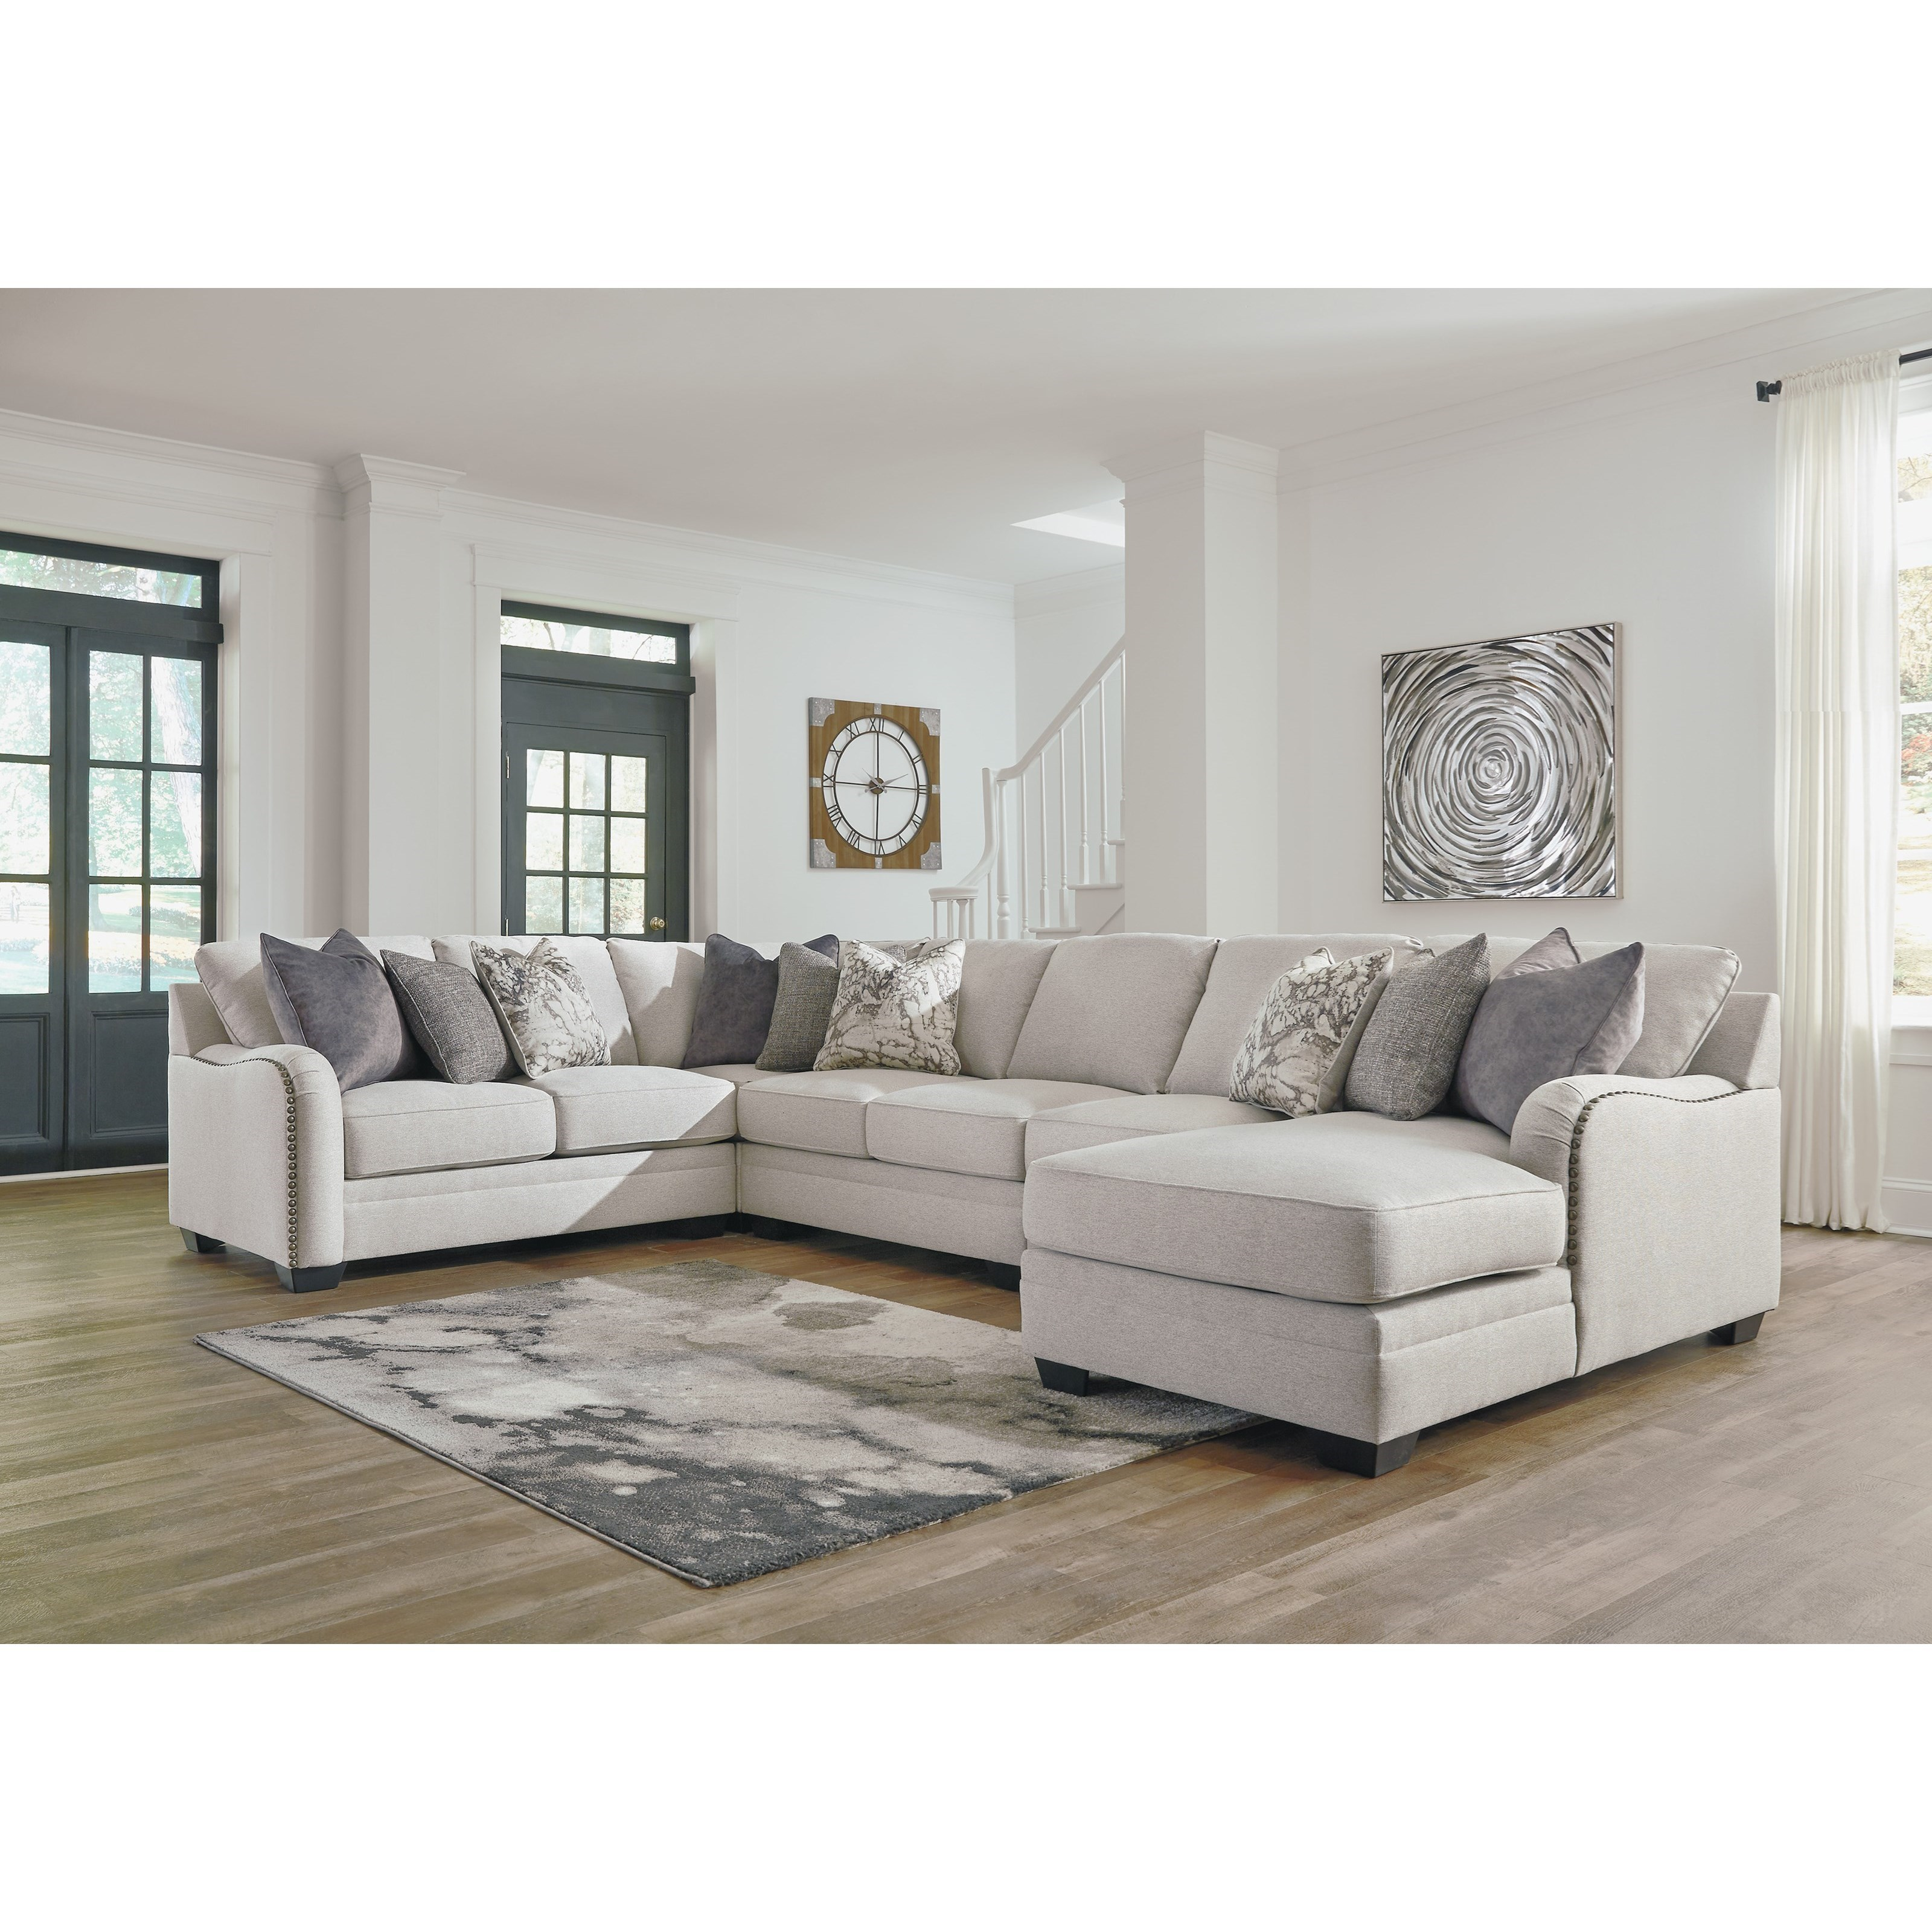 ashley furniture sectional sofa reviews sofascore tennis diretta sectionals sofas review home co